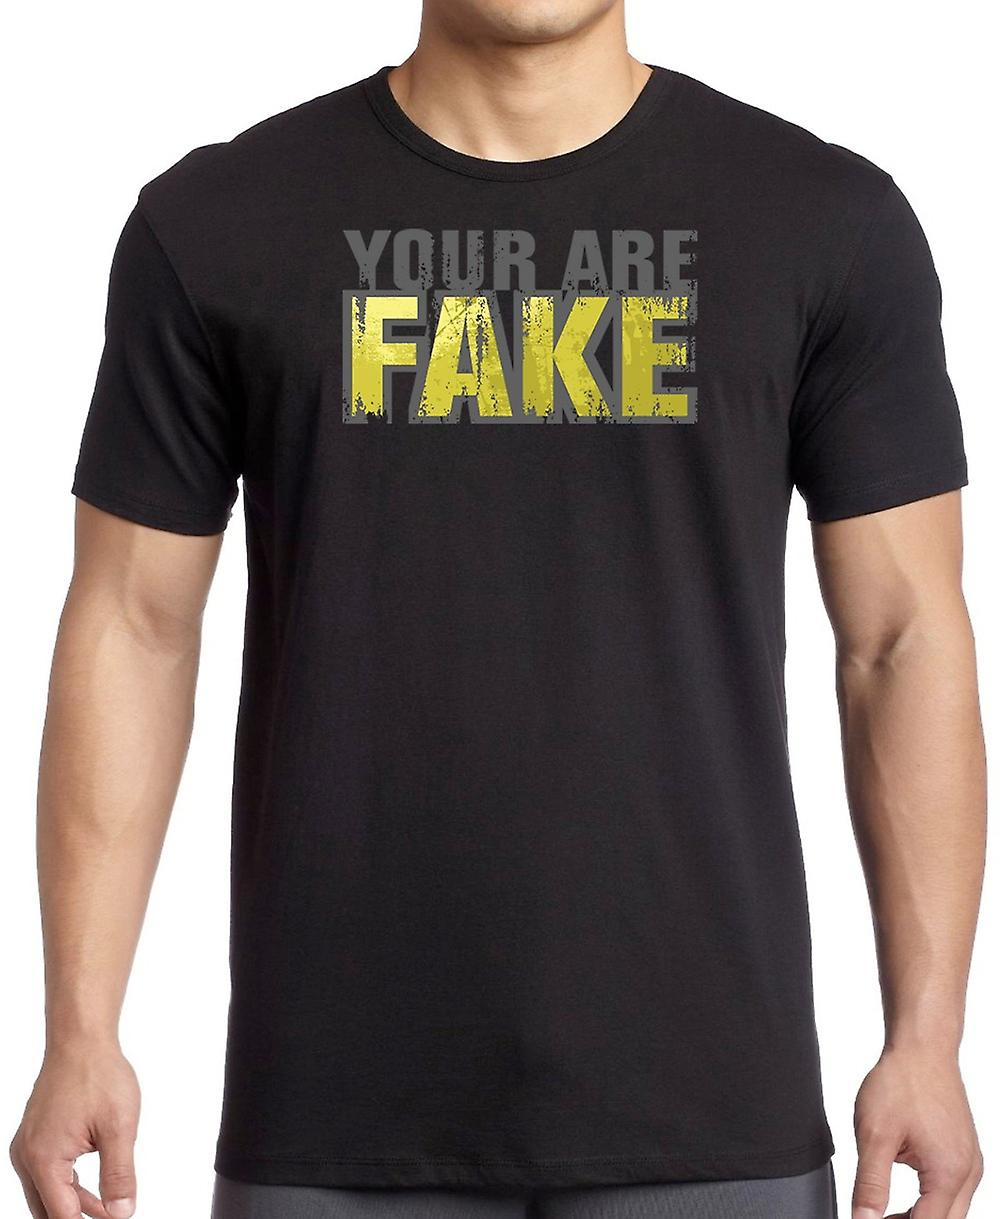 You Are Fake - Funny Crude Women T Shirt